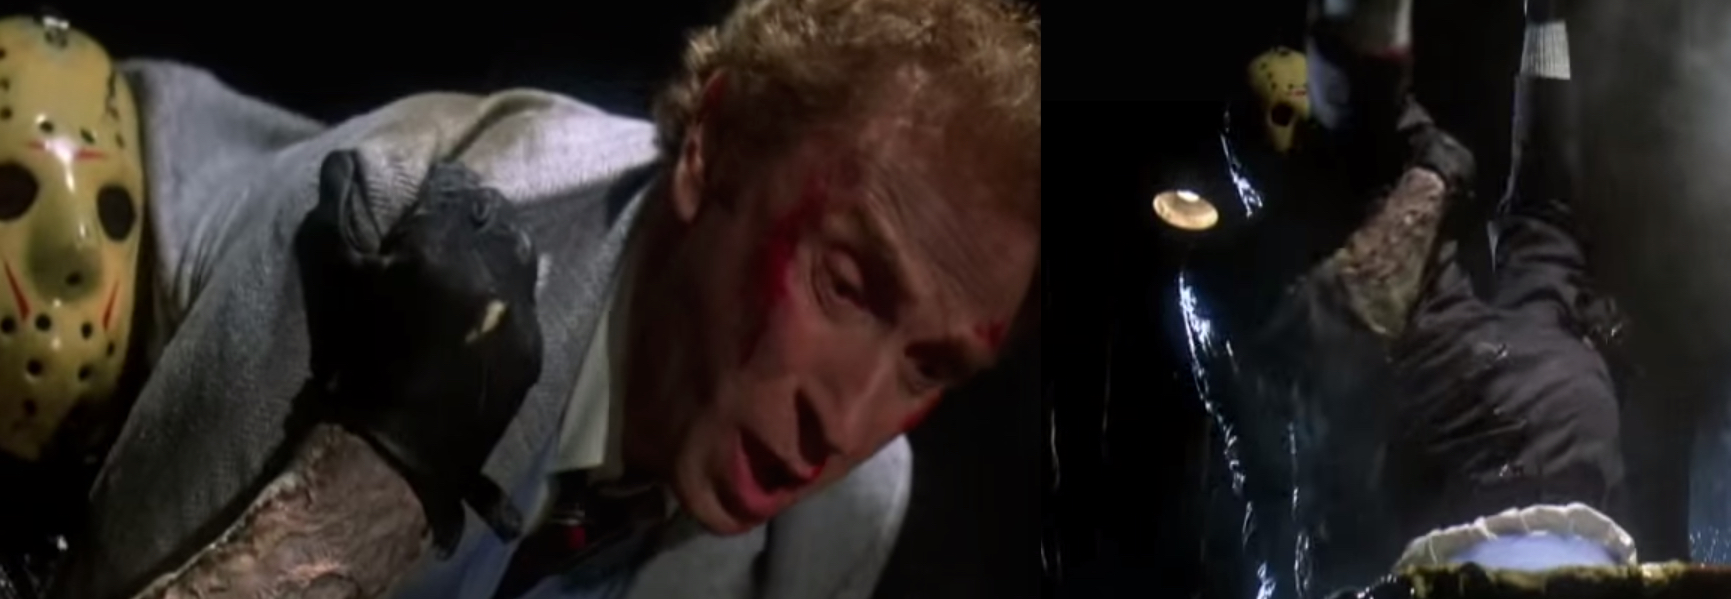 Horror Movie Assholes : Charles McCulloch 2